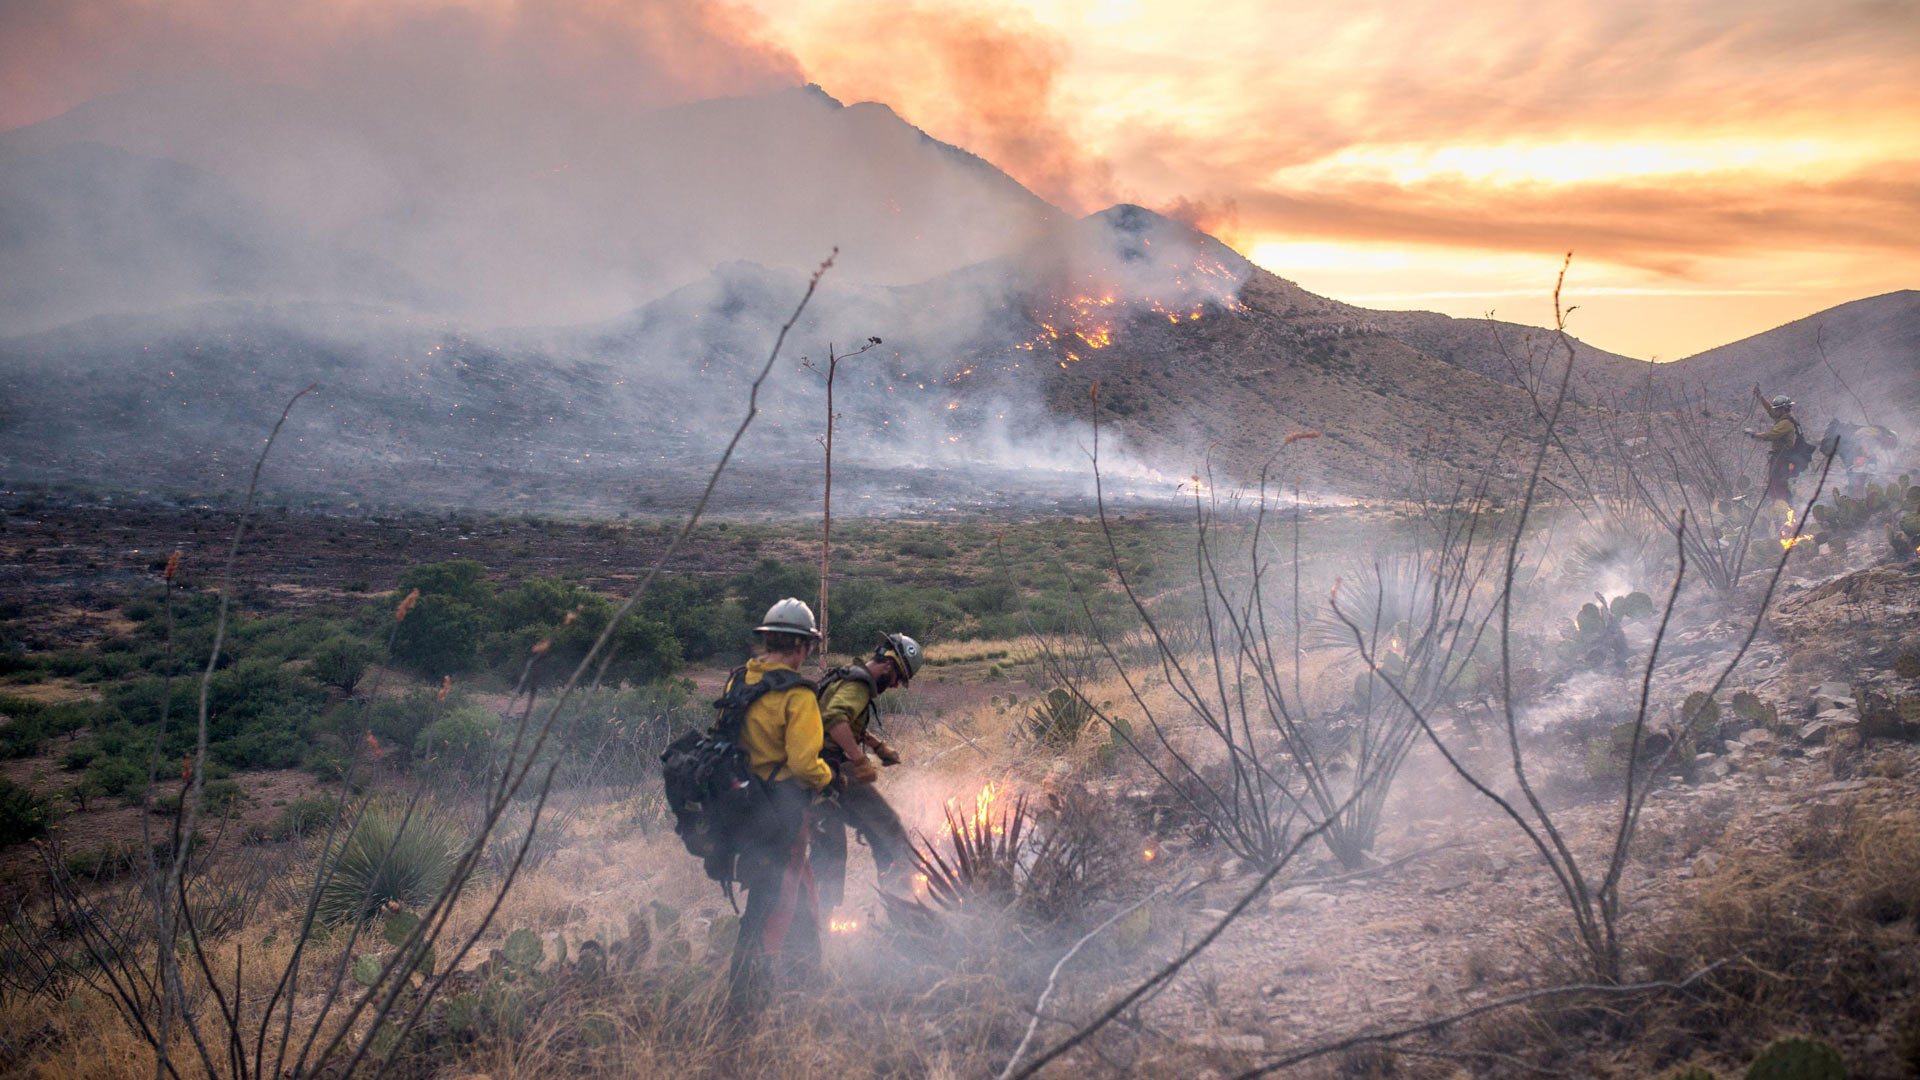 Firefighters battle the Lizard Fire on a smoky hillside.